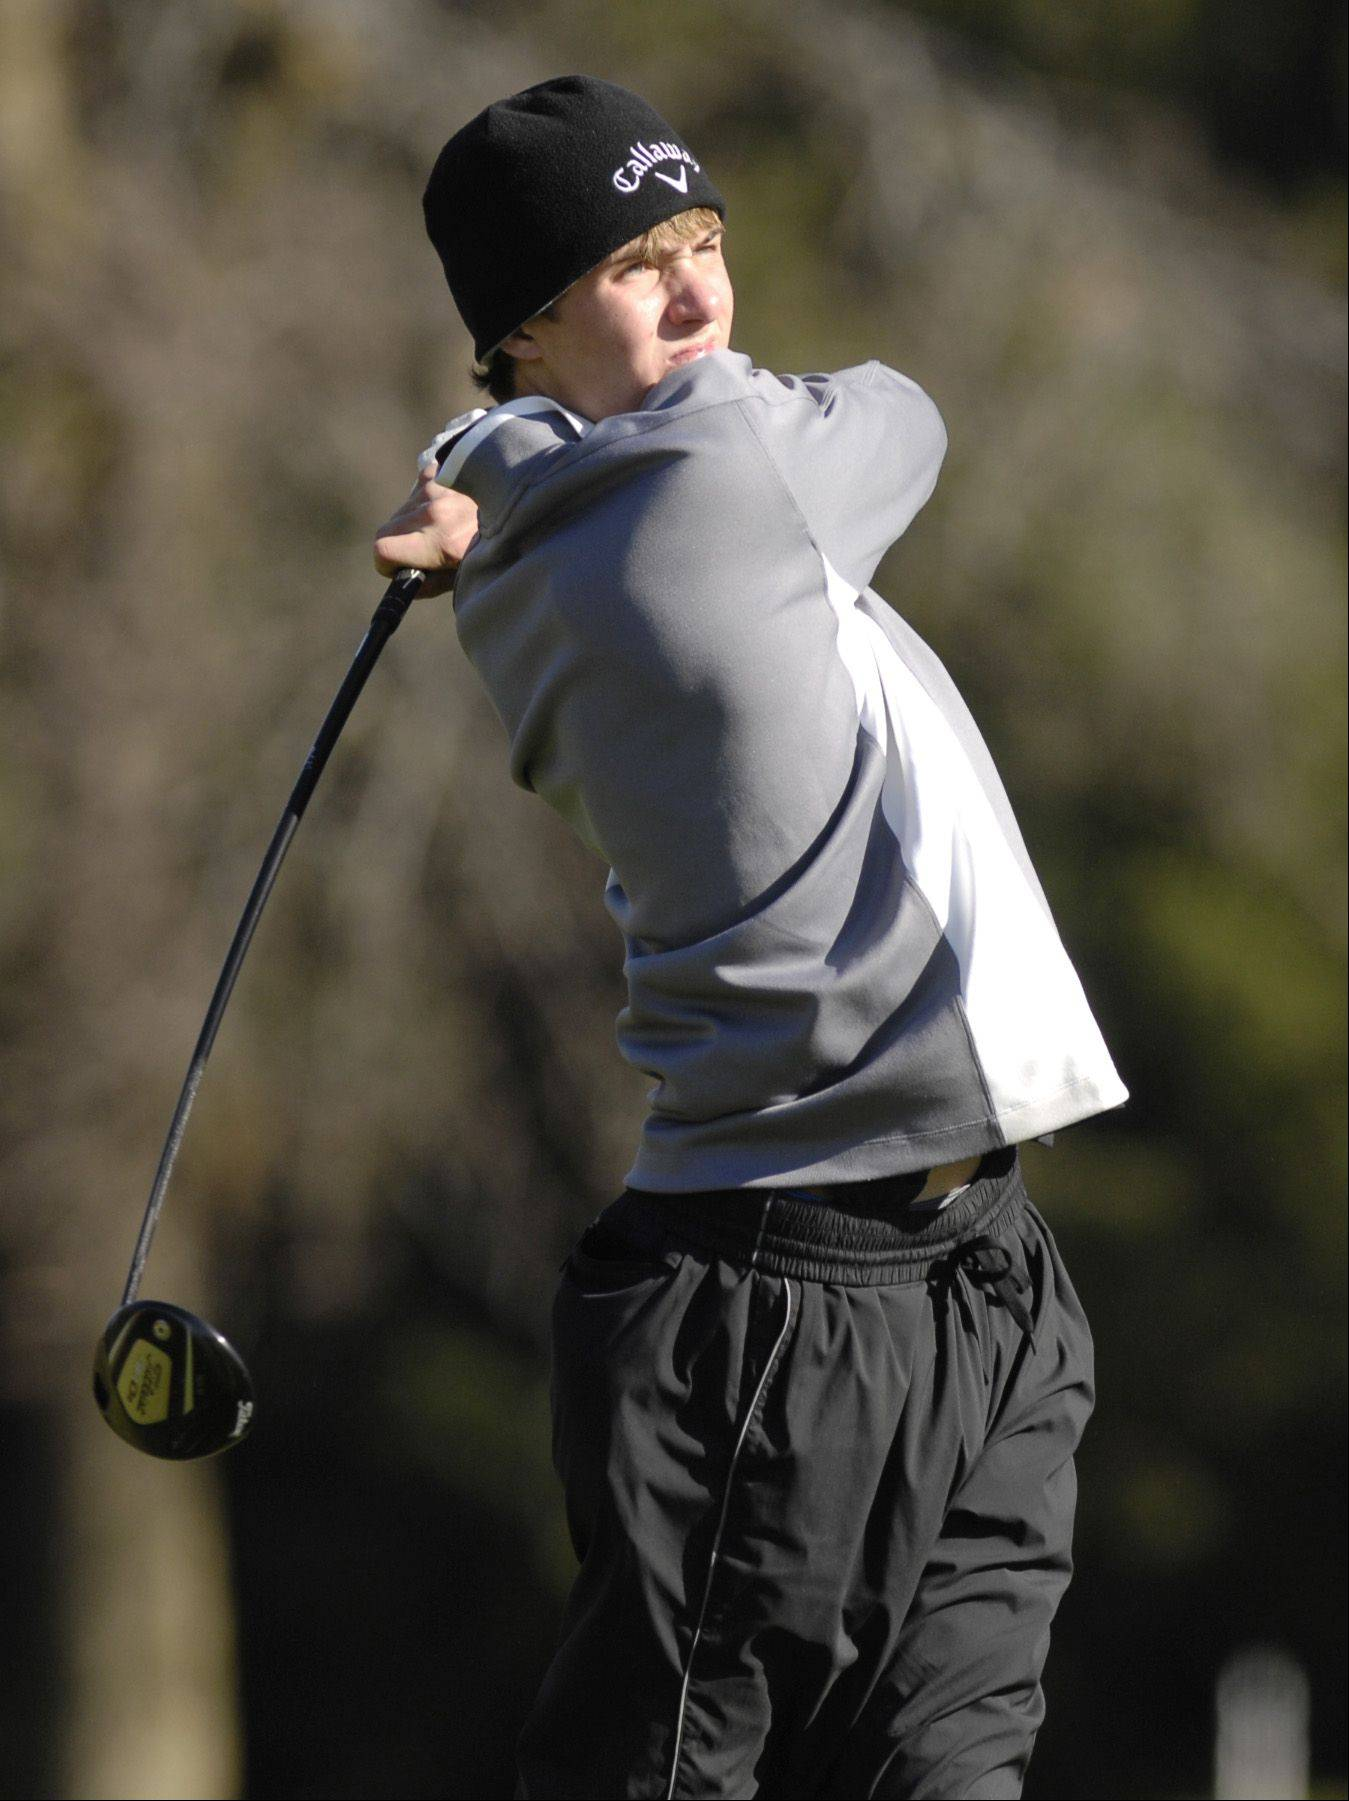 Adam Gracik of York tees off during the St. Charles East boys varsity golf sectional at St. Andrews Golf Club in West Chicago, Monday.